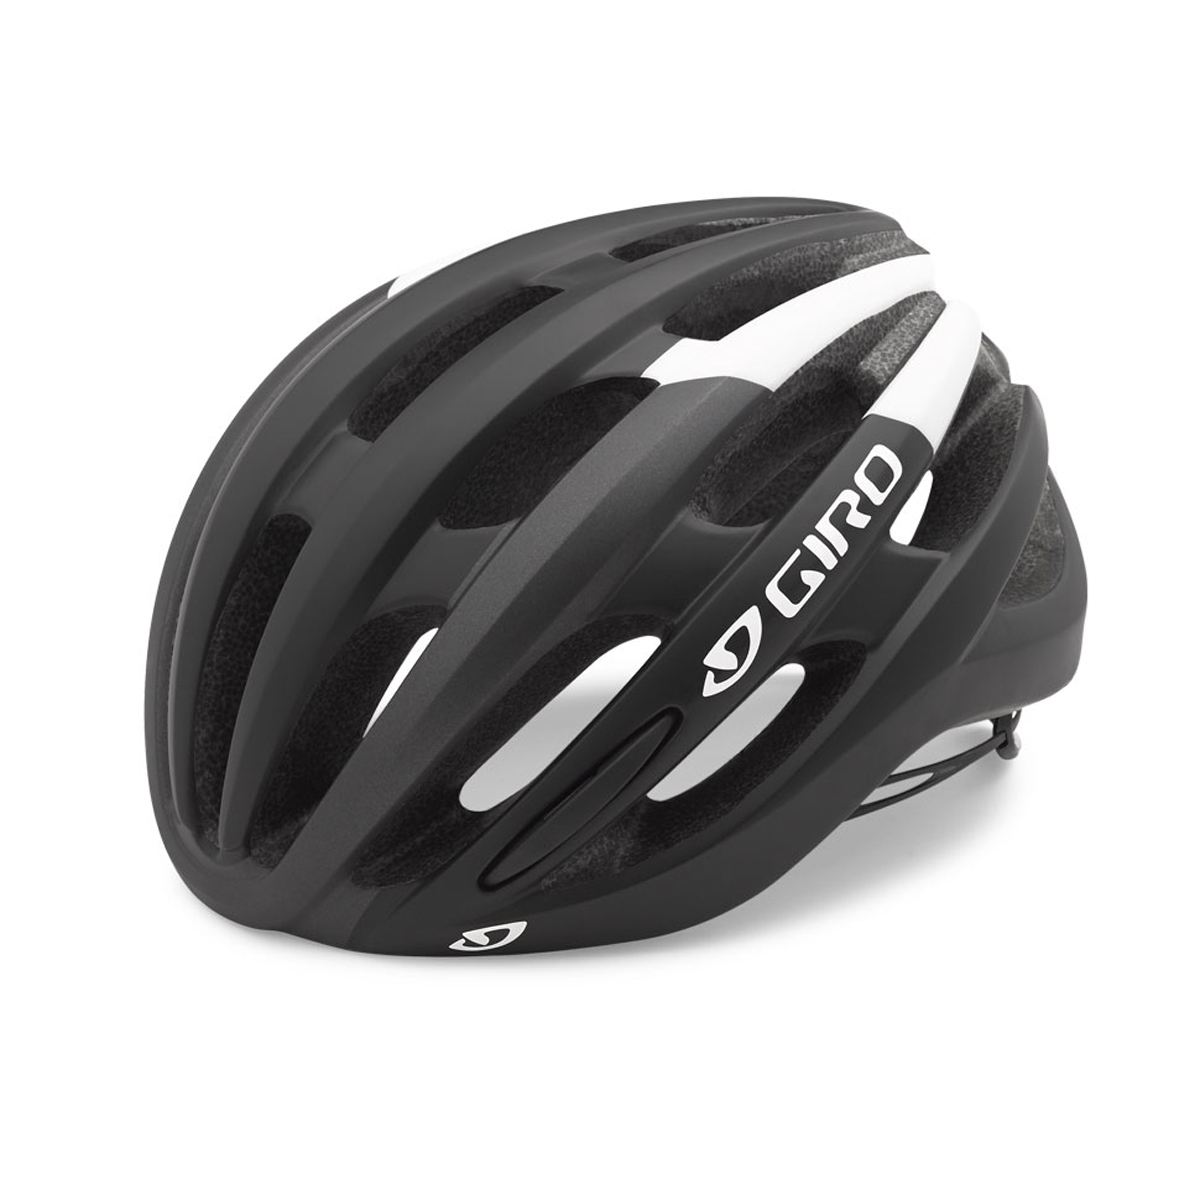 Giro Foray Helmet : Black/White